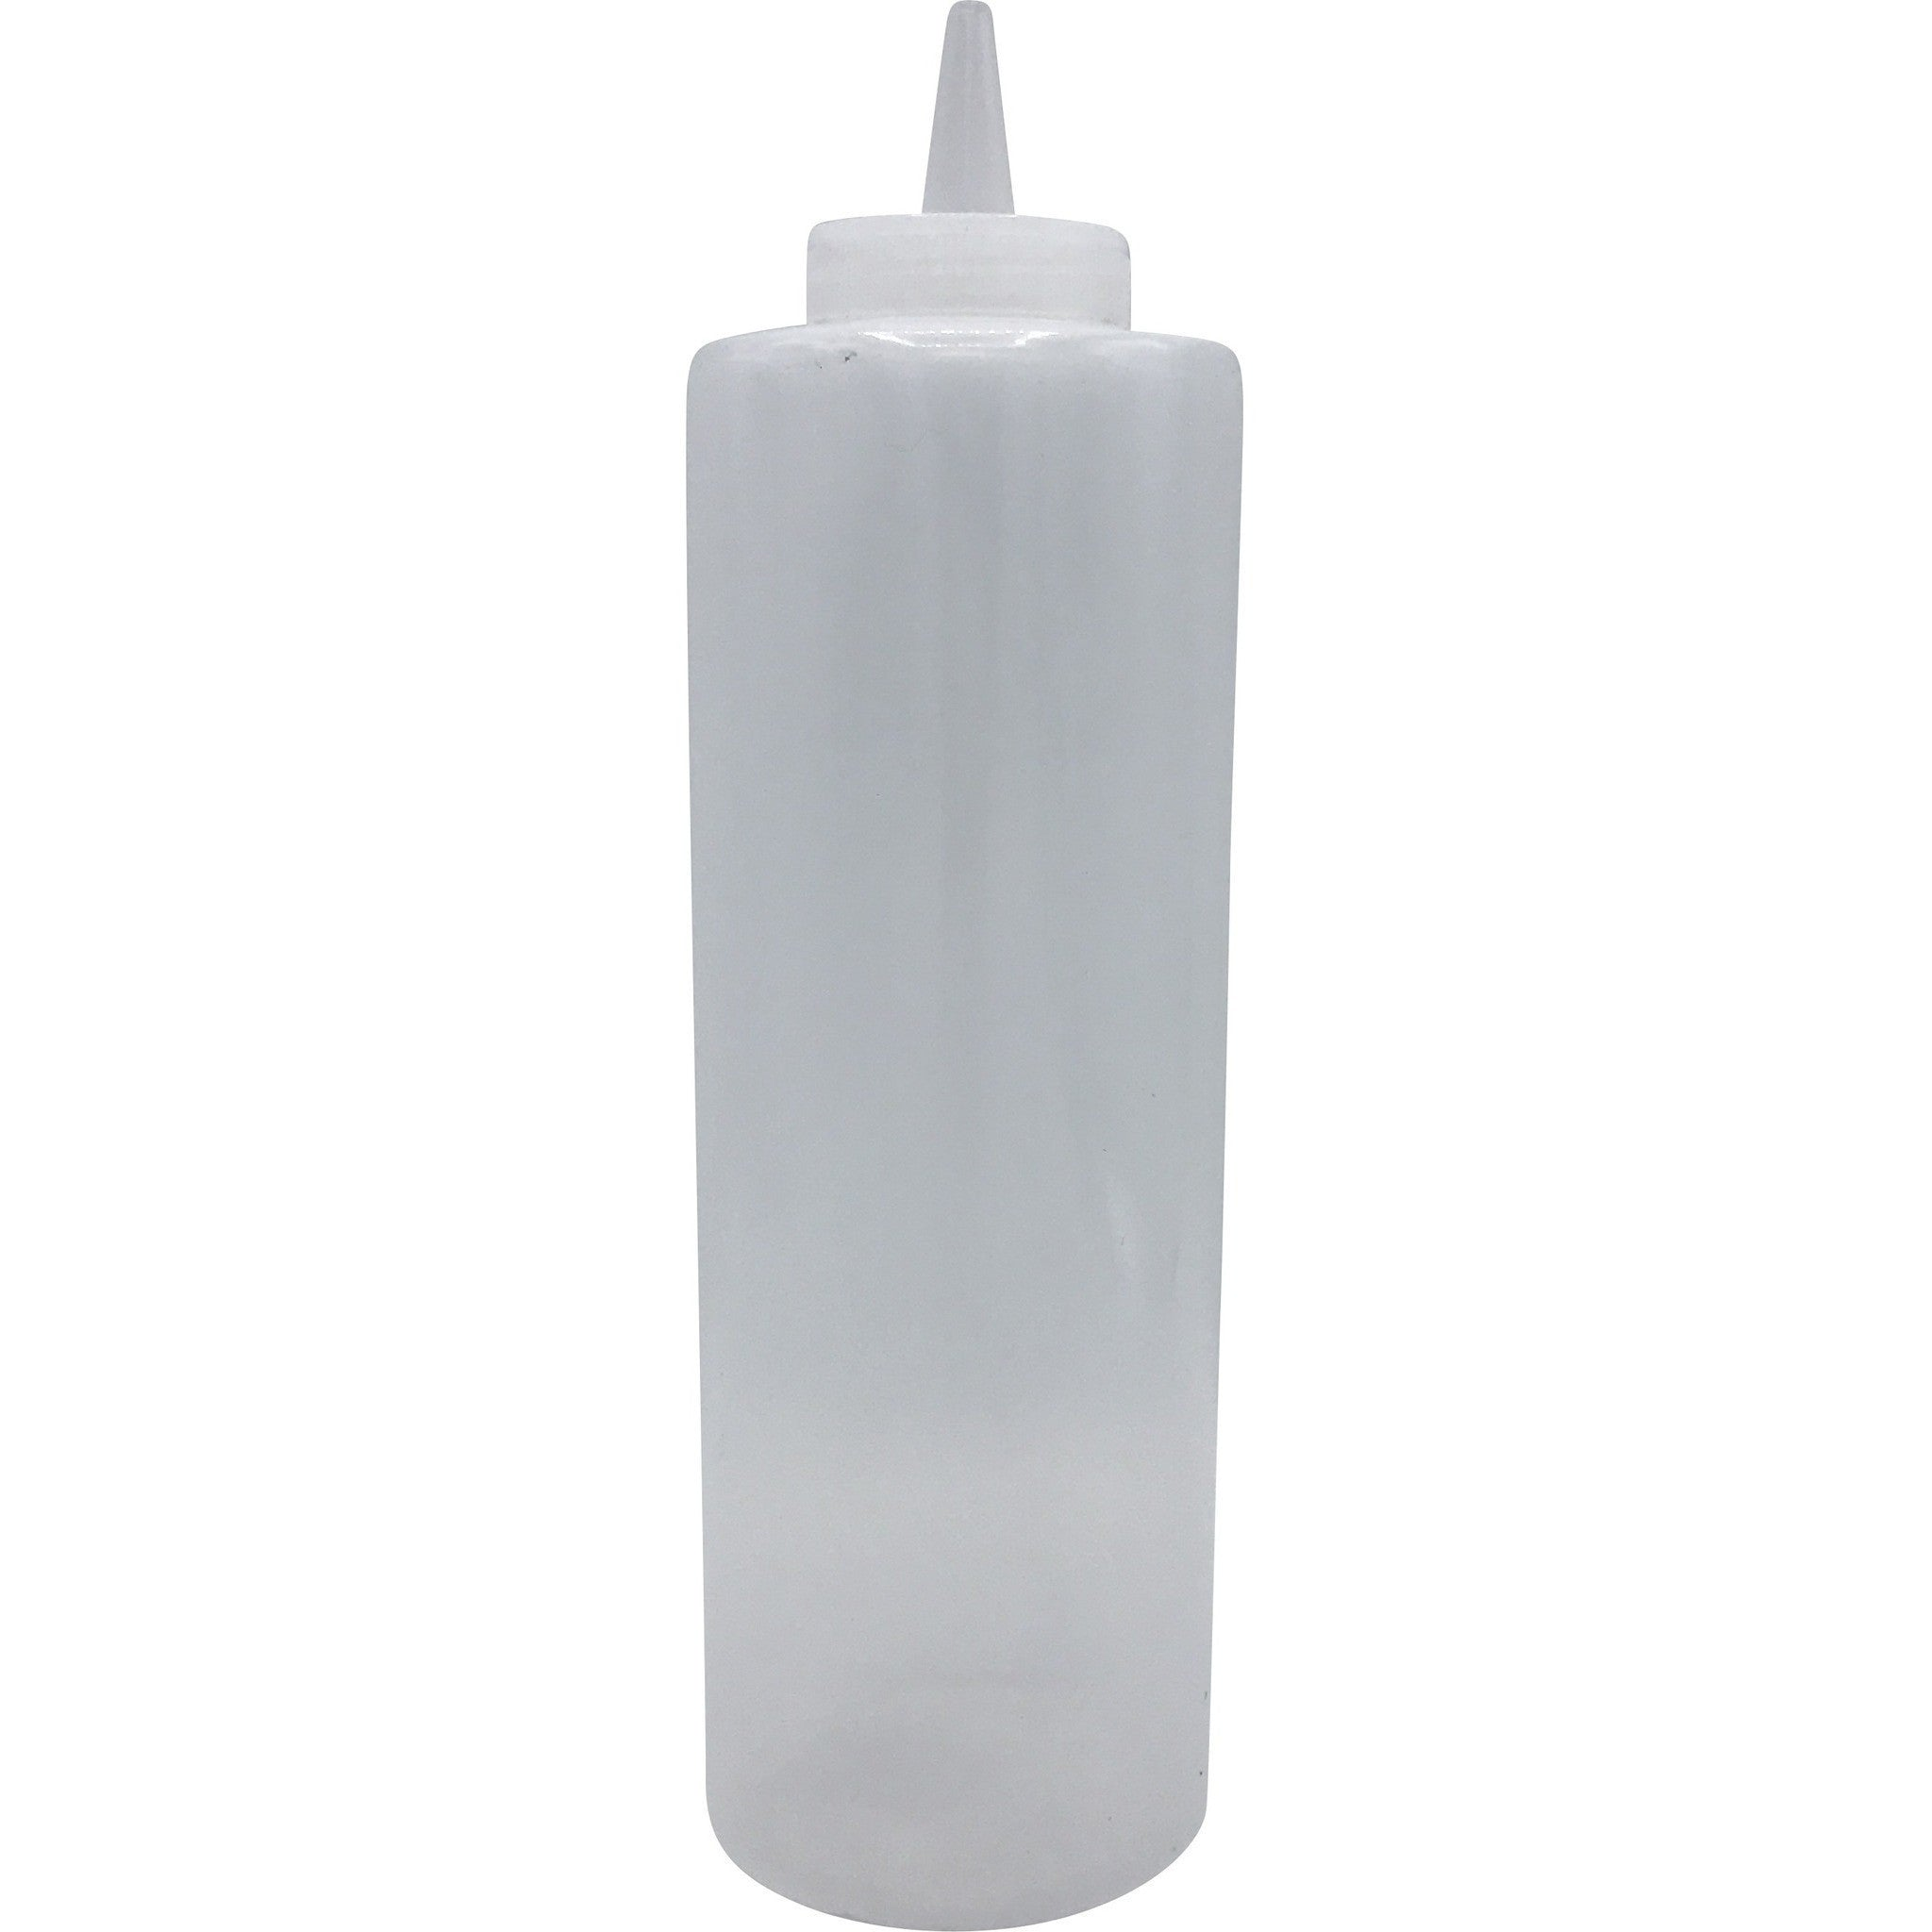 Plastic Liquid Dispenser Bottle - IcySkyy